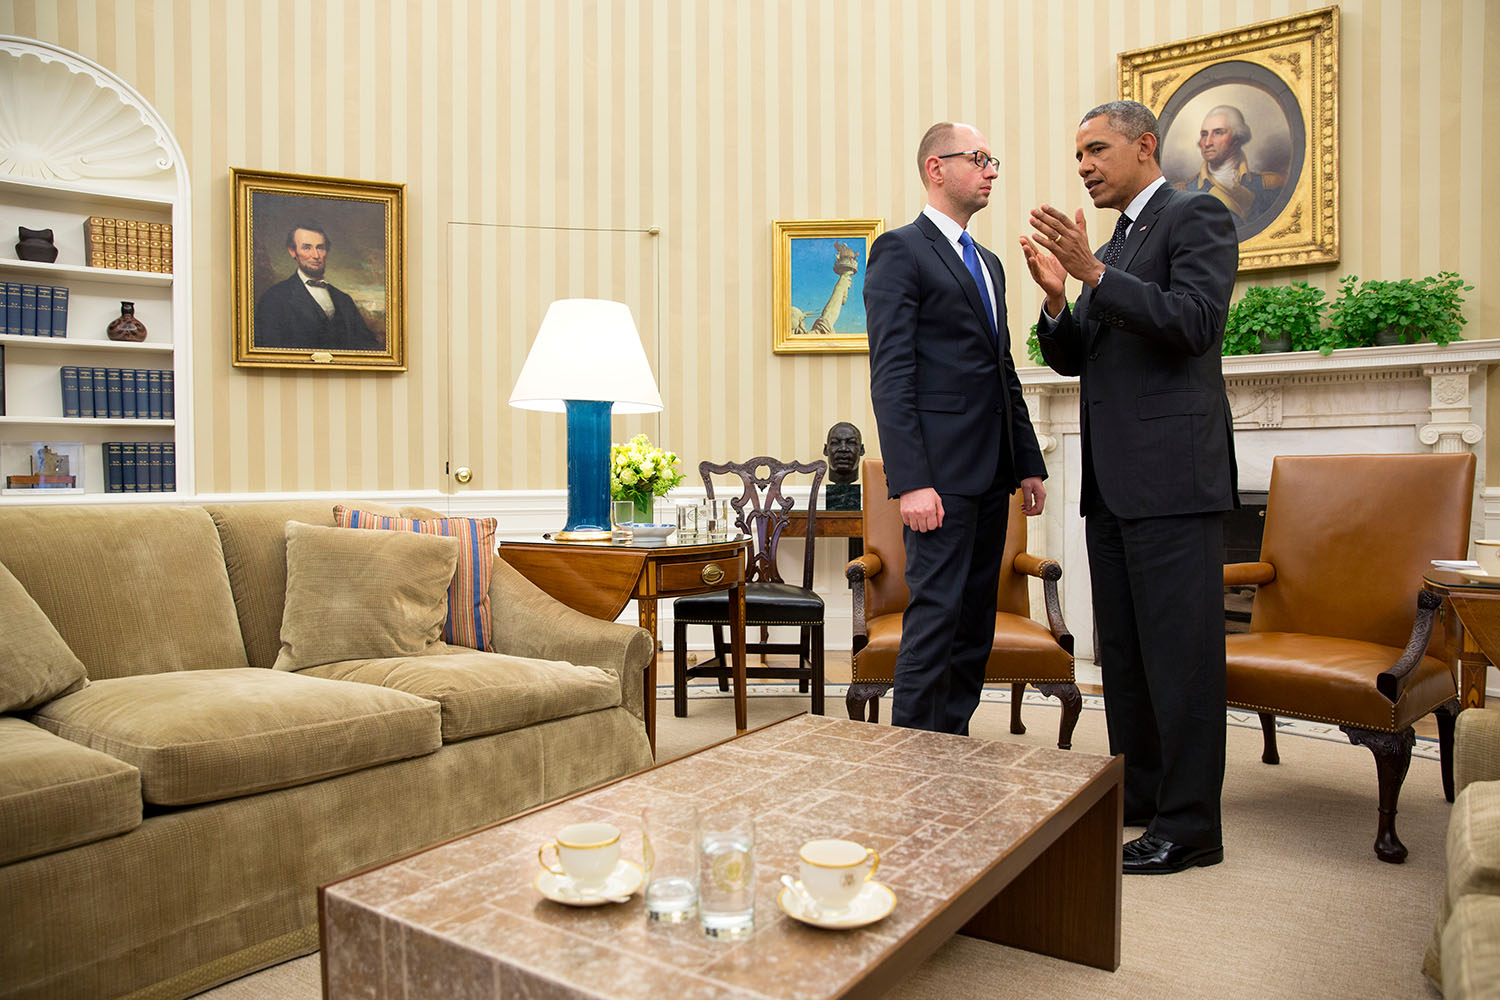 President Barack Obama talks with Prime Minister Arseniy Yatsenyuk of Ukraine at the conclusion of their bilateral meeting in the Oval Office, March 12, 2014. (Official White House Photo by Pete Souza)1 of 7